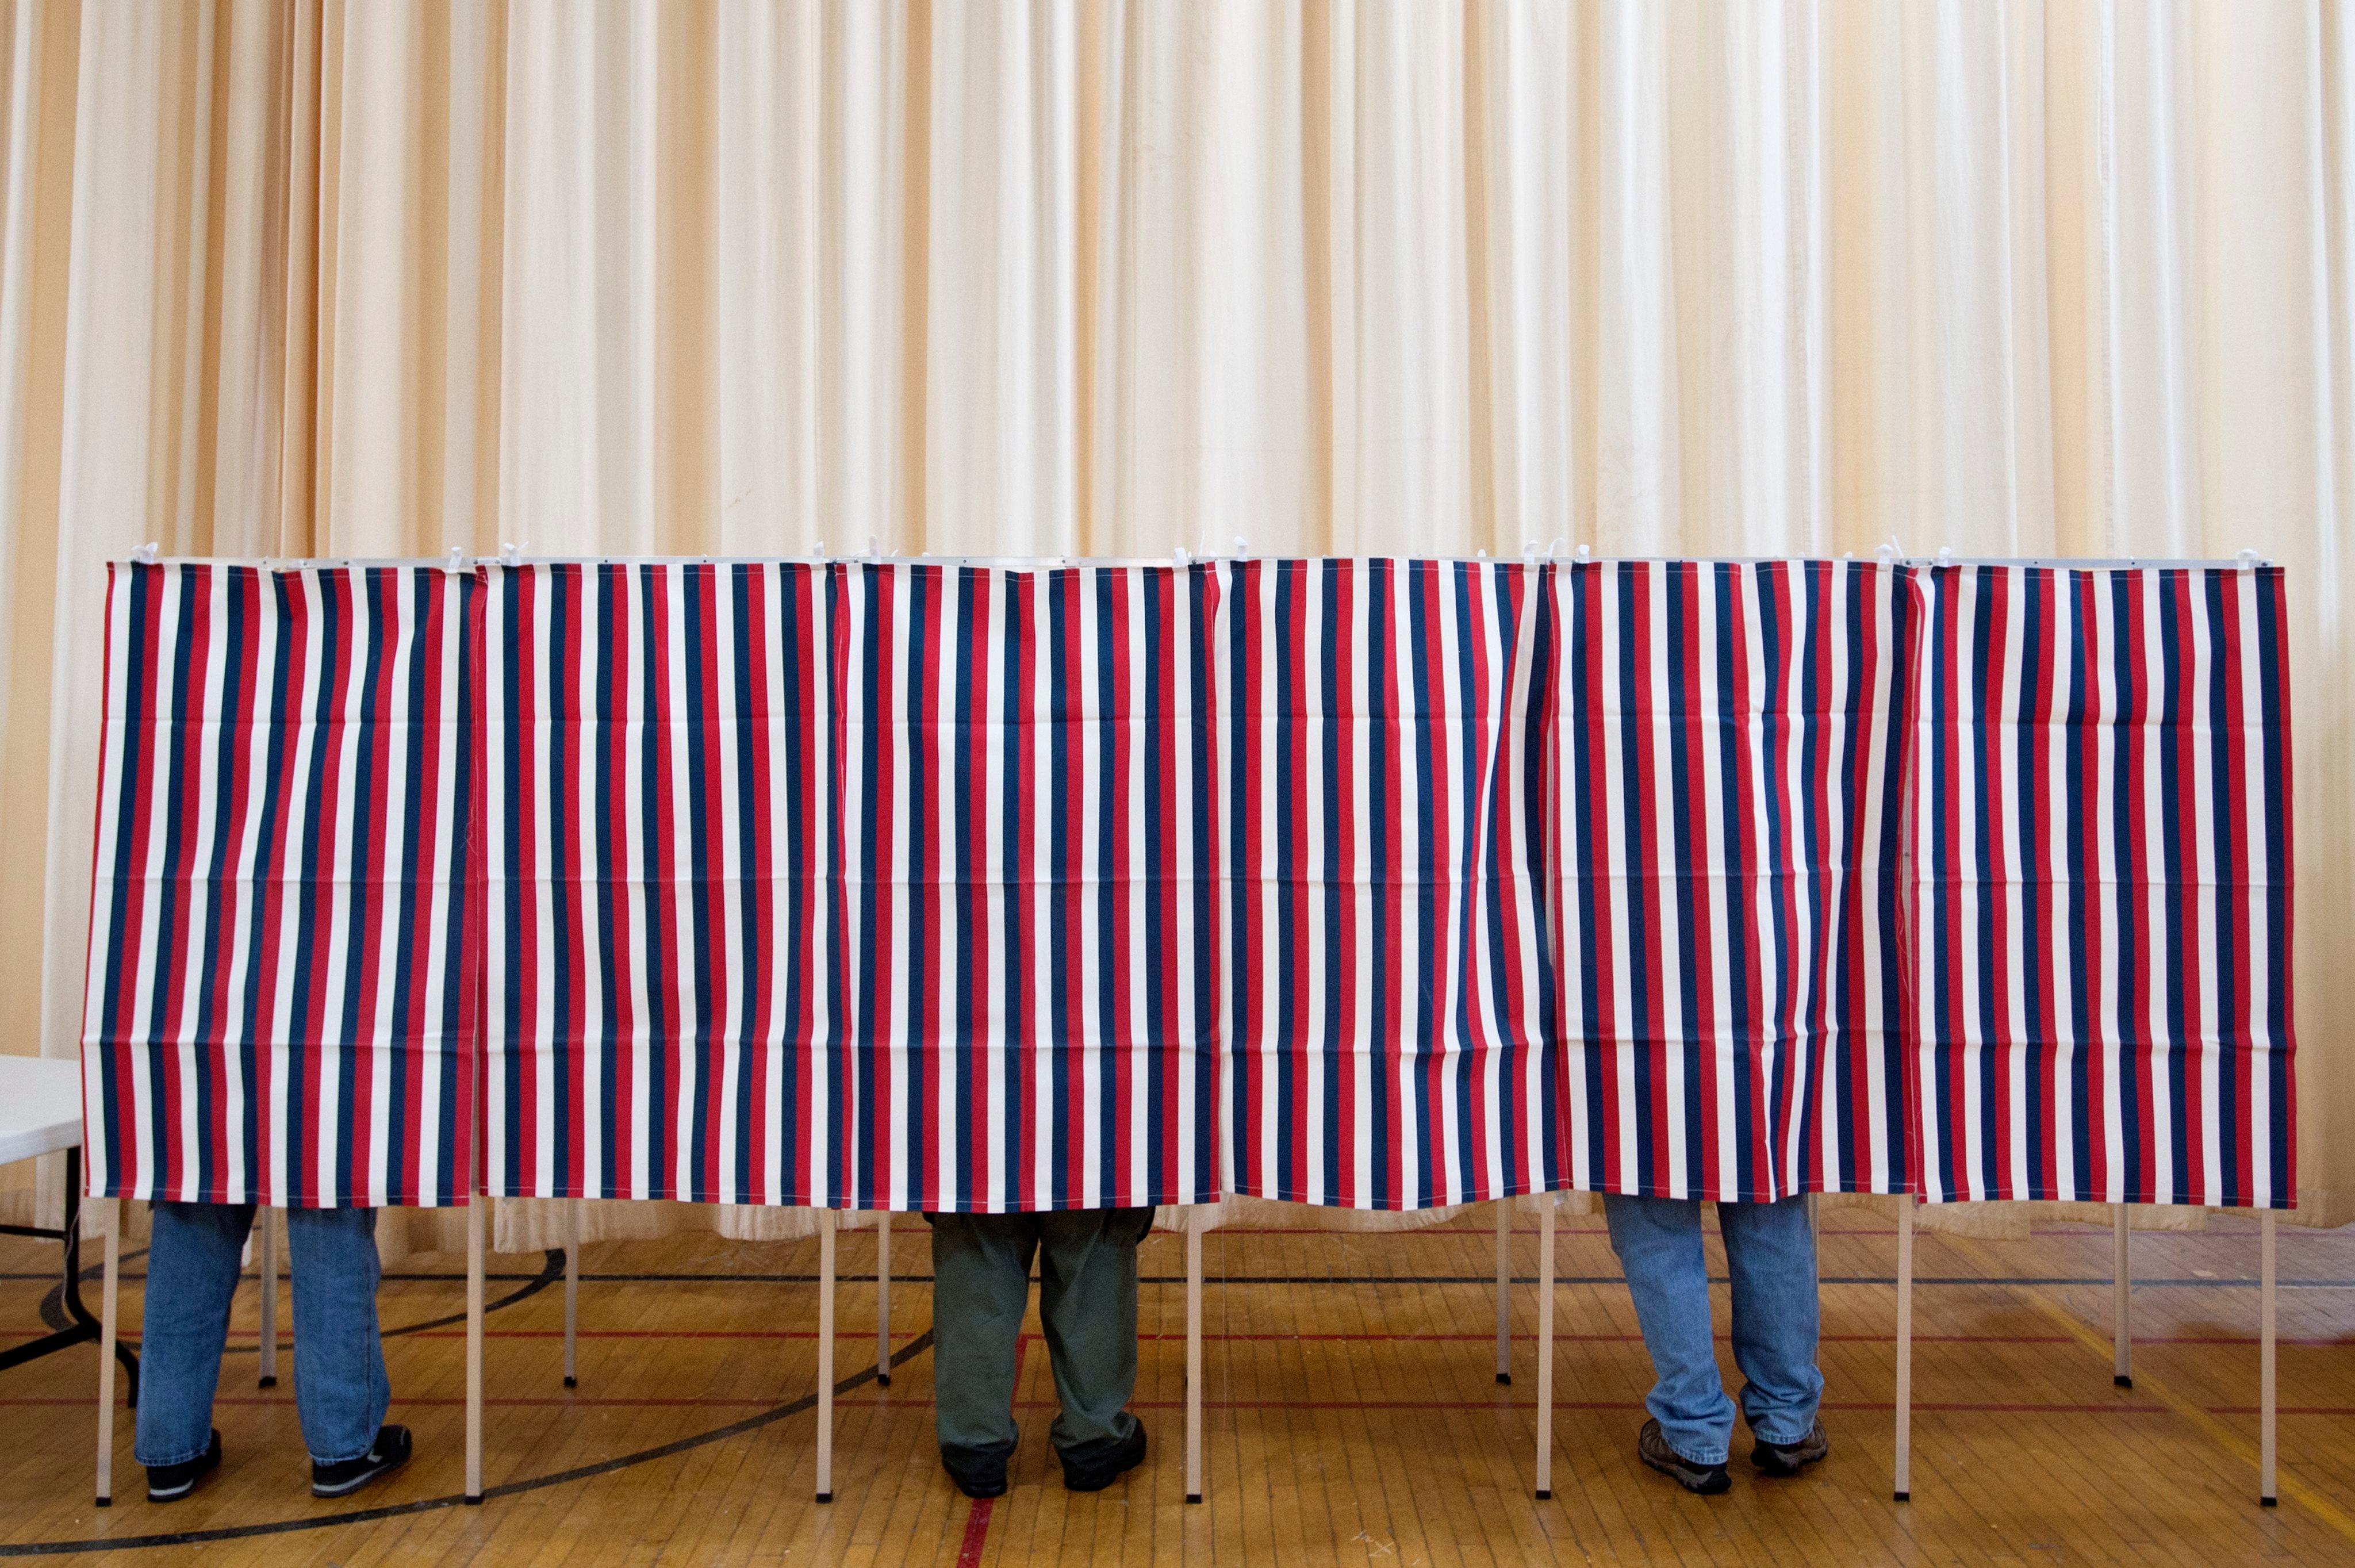 People stand in booths to vote in the New Hampshire primary at a polling station in Laconia, New Hampshire.